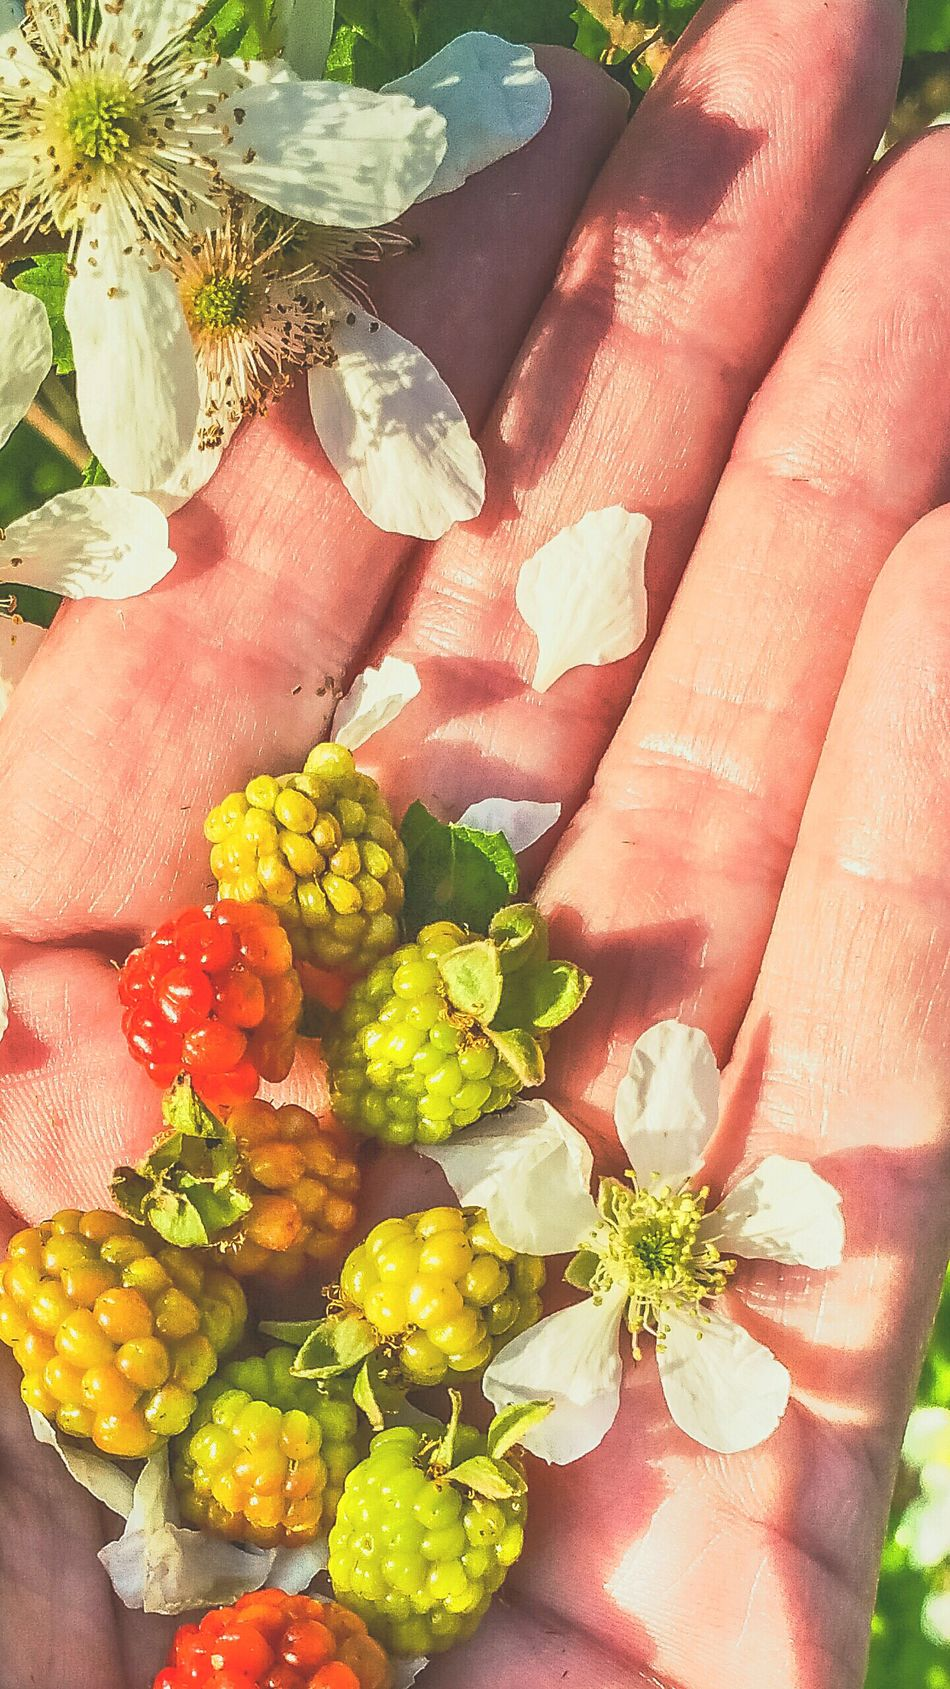 Human Hand Close-up Flower Head Fruit Healthy Eating Freshness Outdoors Flower Food Leaf Day Nature Wild Bunch Ready-to-eat Berry Fruit Dew Berries Variation Wild Blackberries Personal Perspective Growth High Angle View Blackberry Group Women